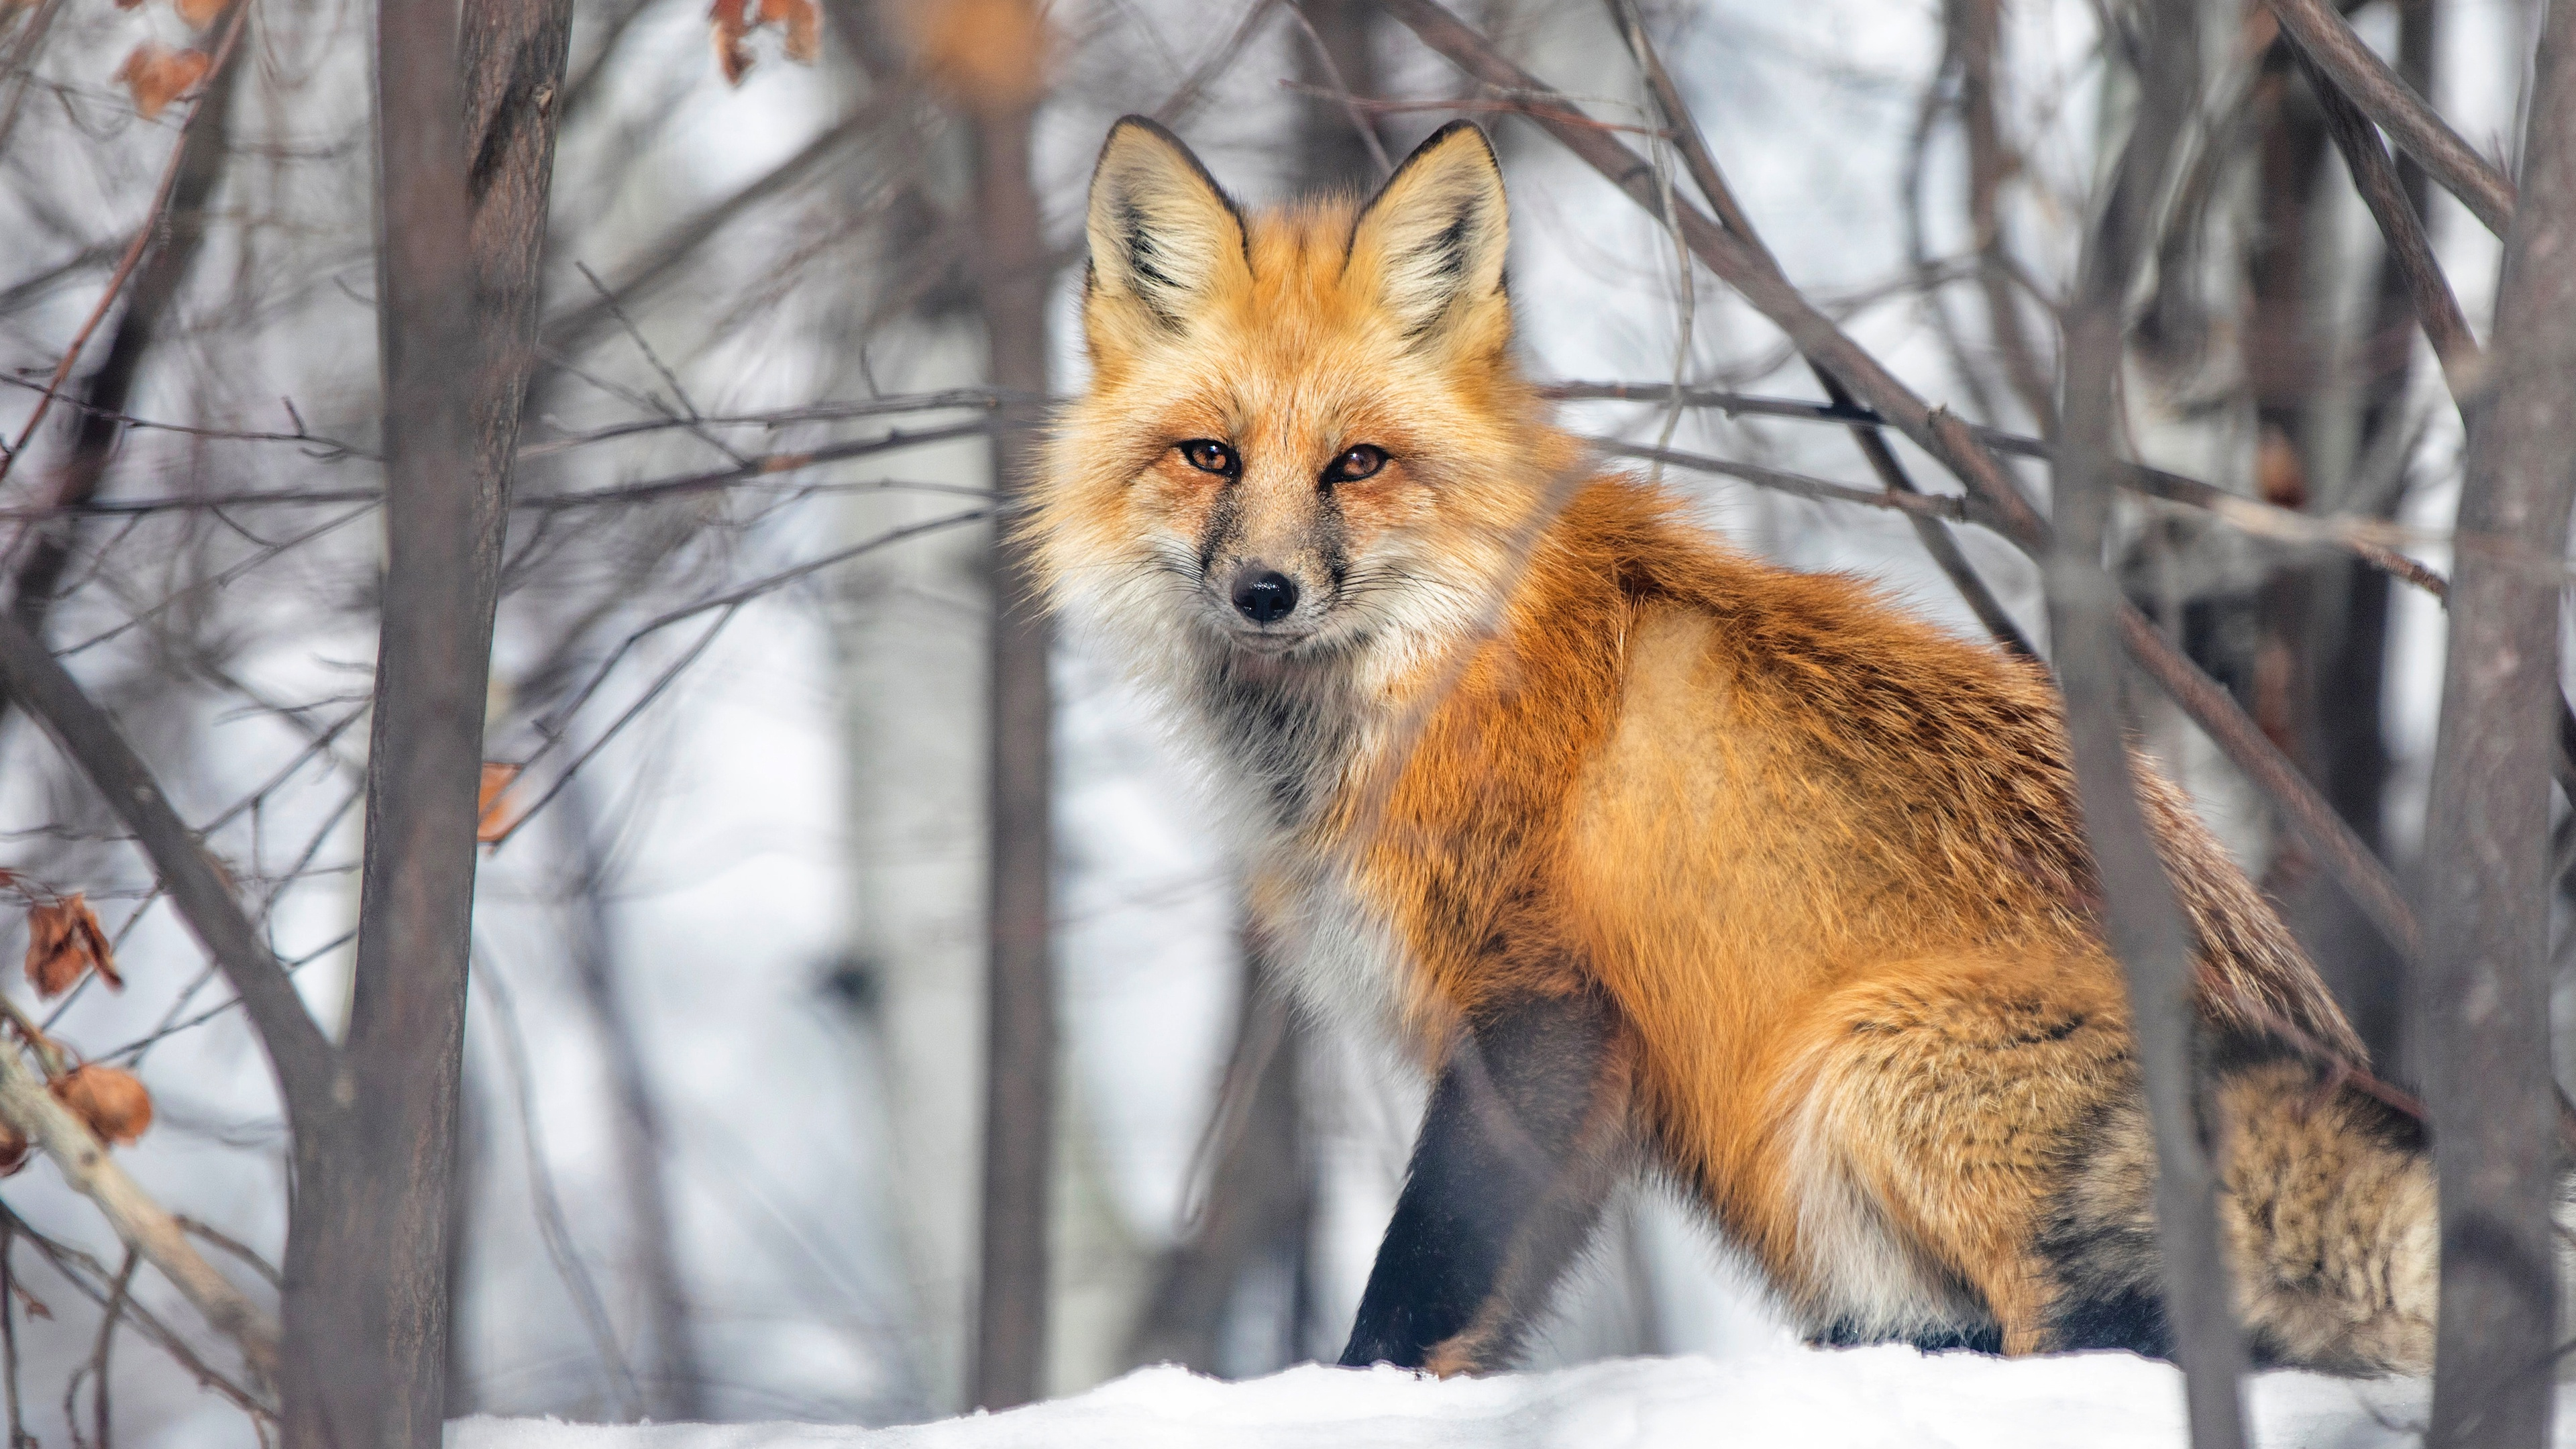 Wallpaper A large red fox sits in the snow in the forest